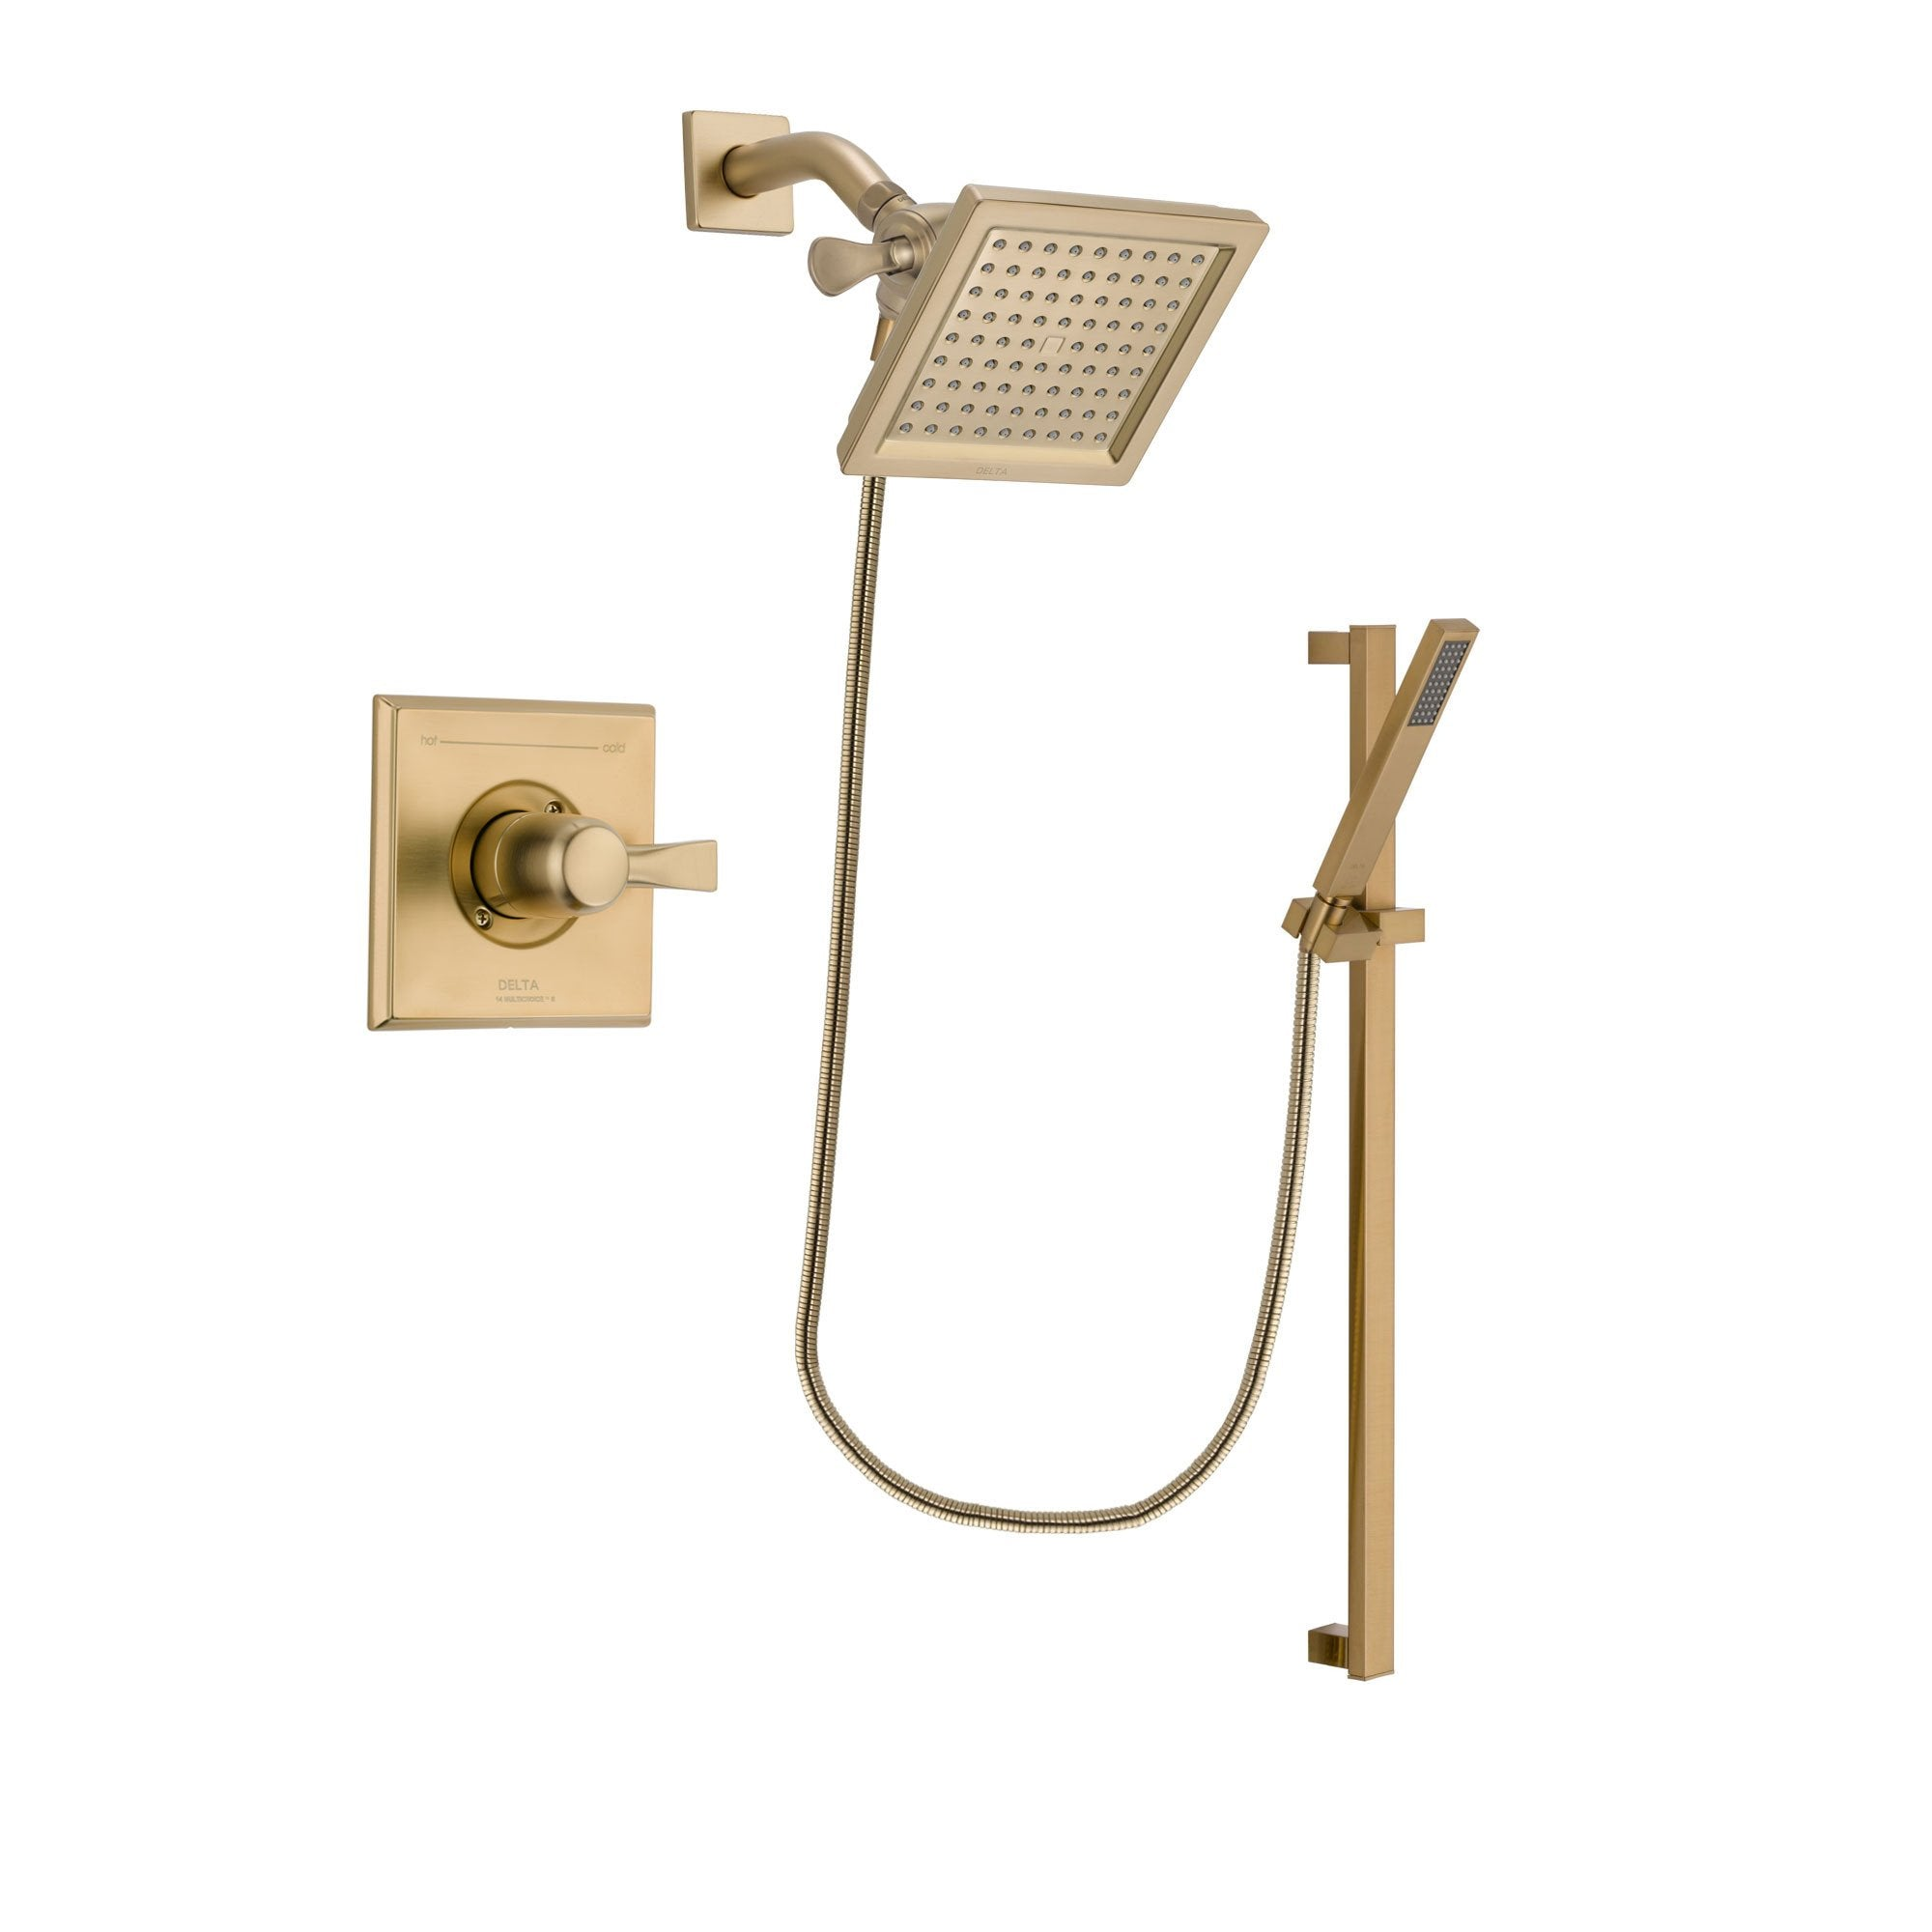 Delta Dryden Champagne Bronze Shower Faucet System with Hand Shower DSP3998V